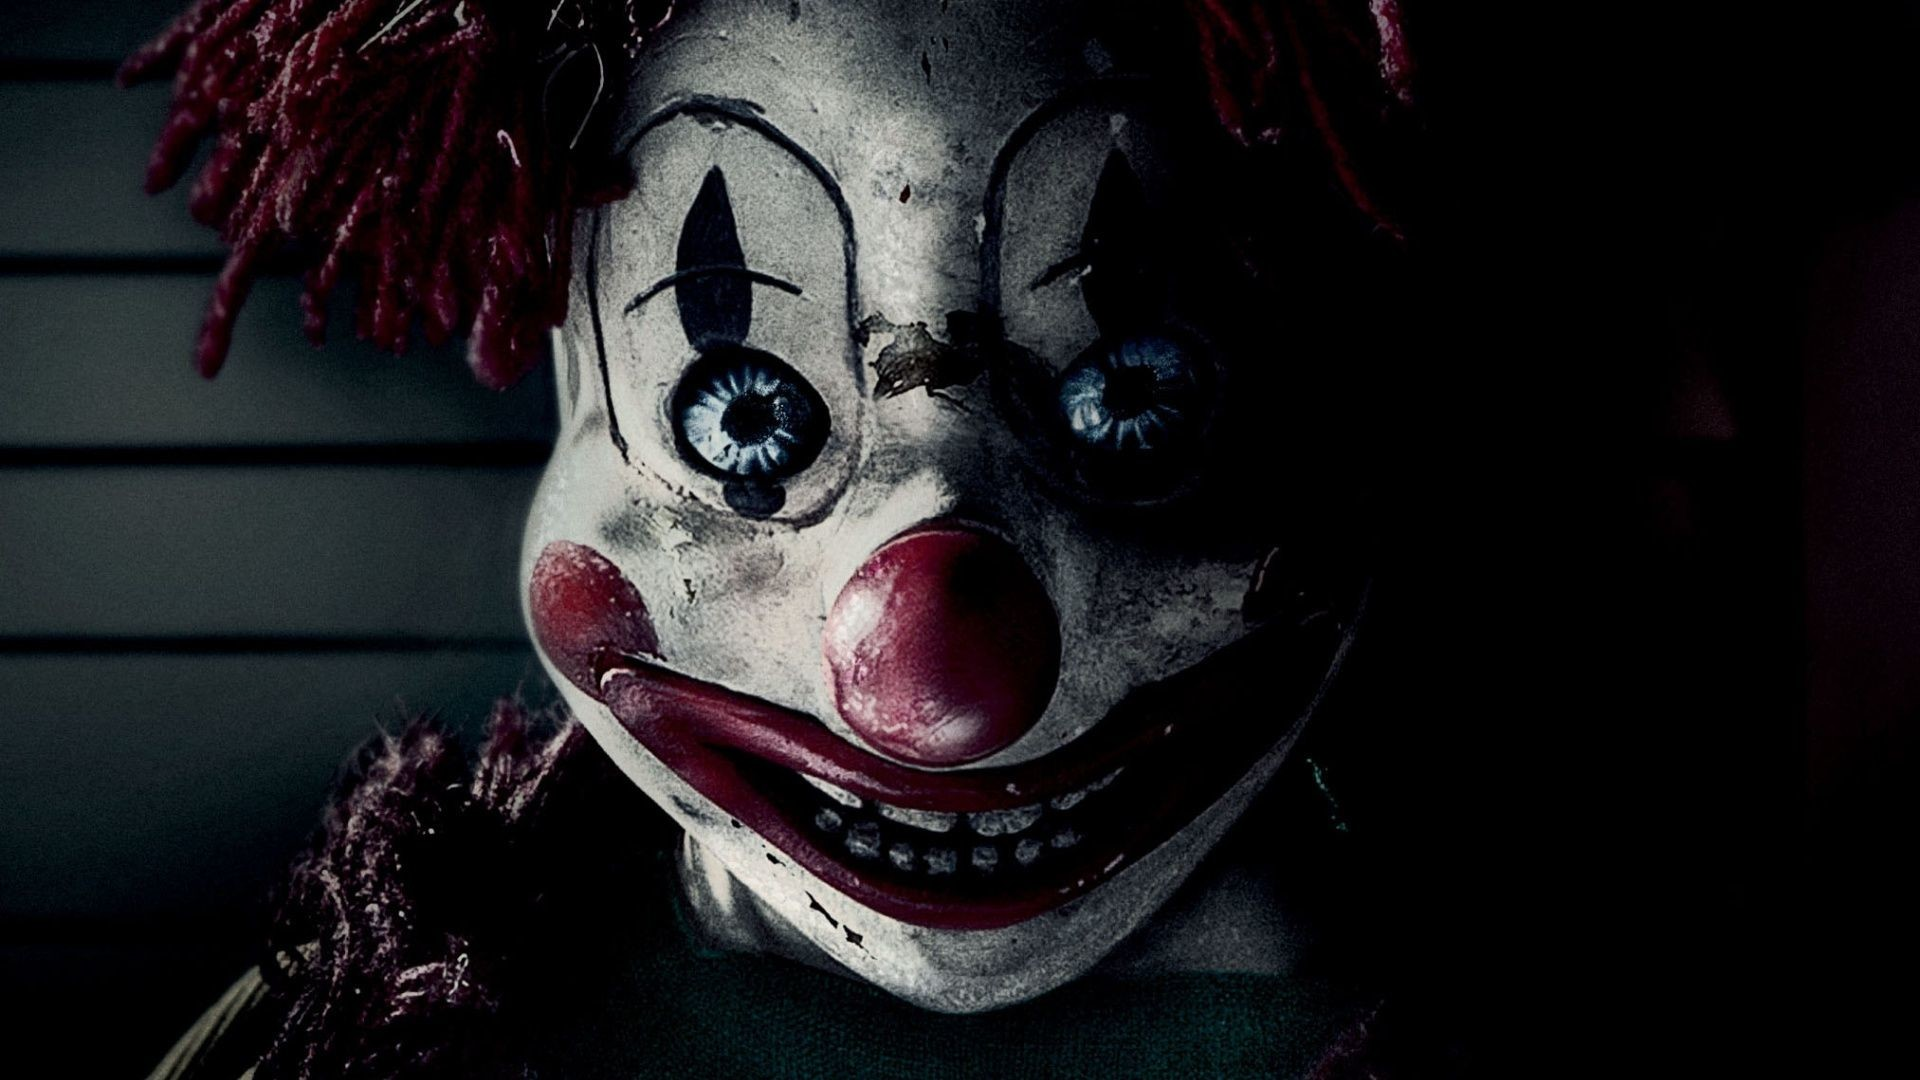 Res: 1920x1080, Killer Clown Wallpaper 500×501 Killer Clown Wallpapers (36 Wallpapers) |  Adorable Wallpapers